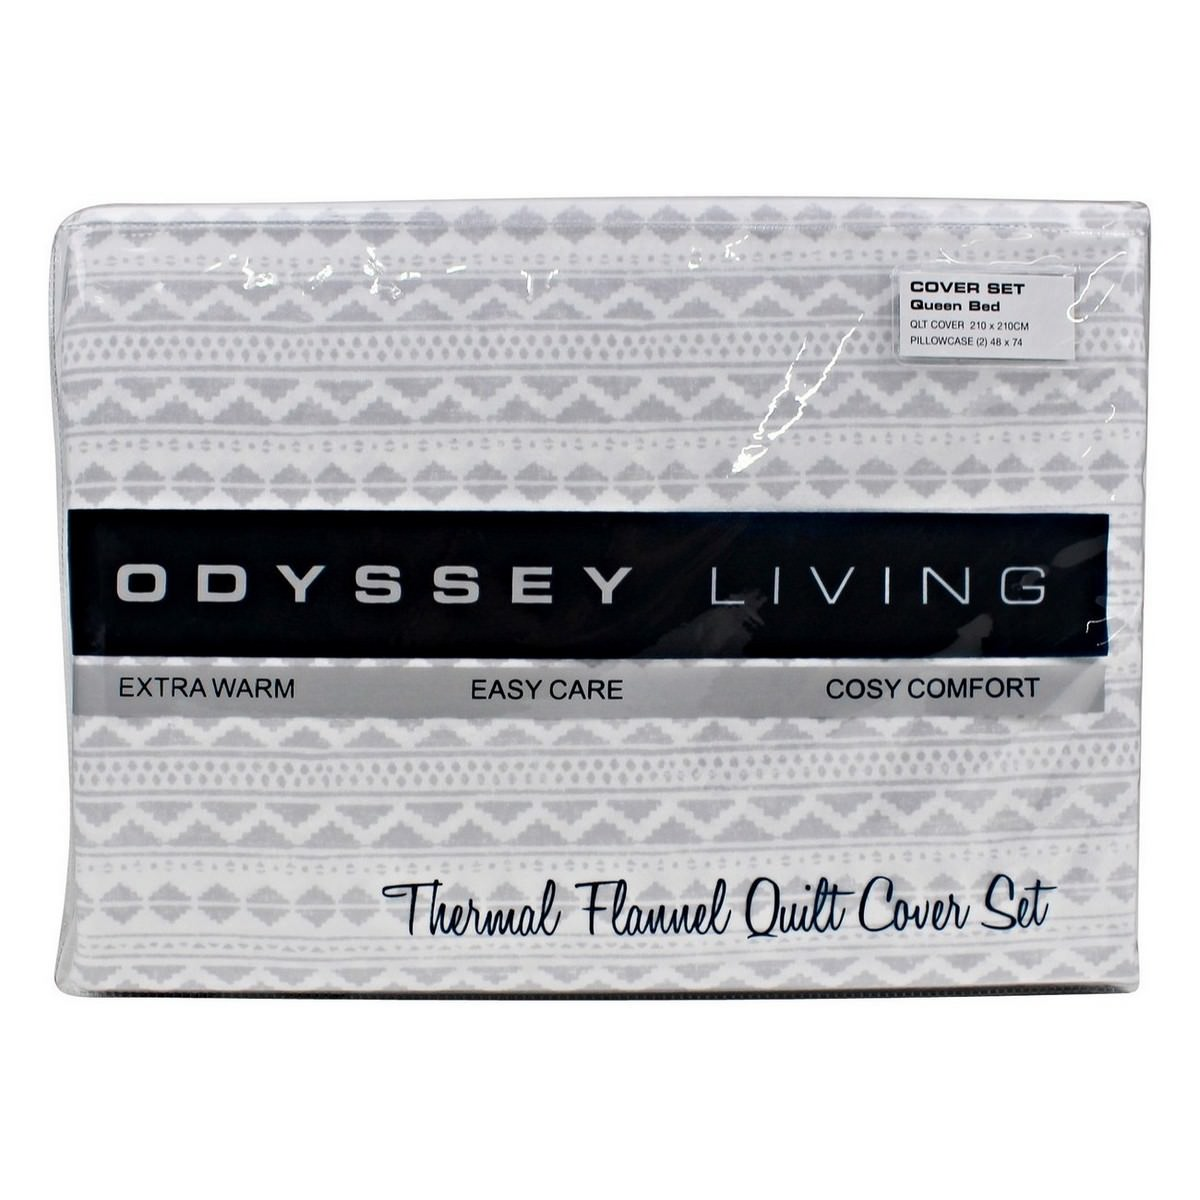 Odyssey Living Sioux Thermal Flannel Quilt Cover Set, Queen, Pale Grey